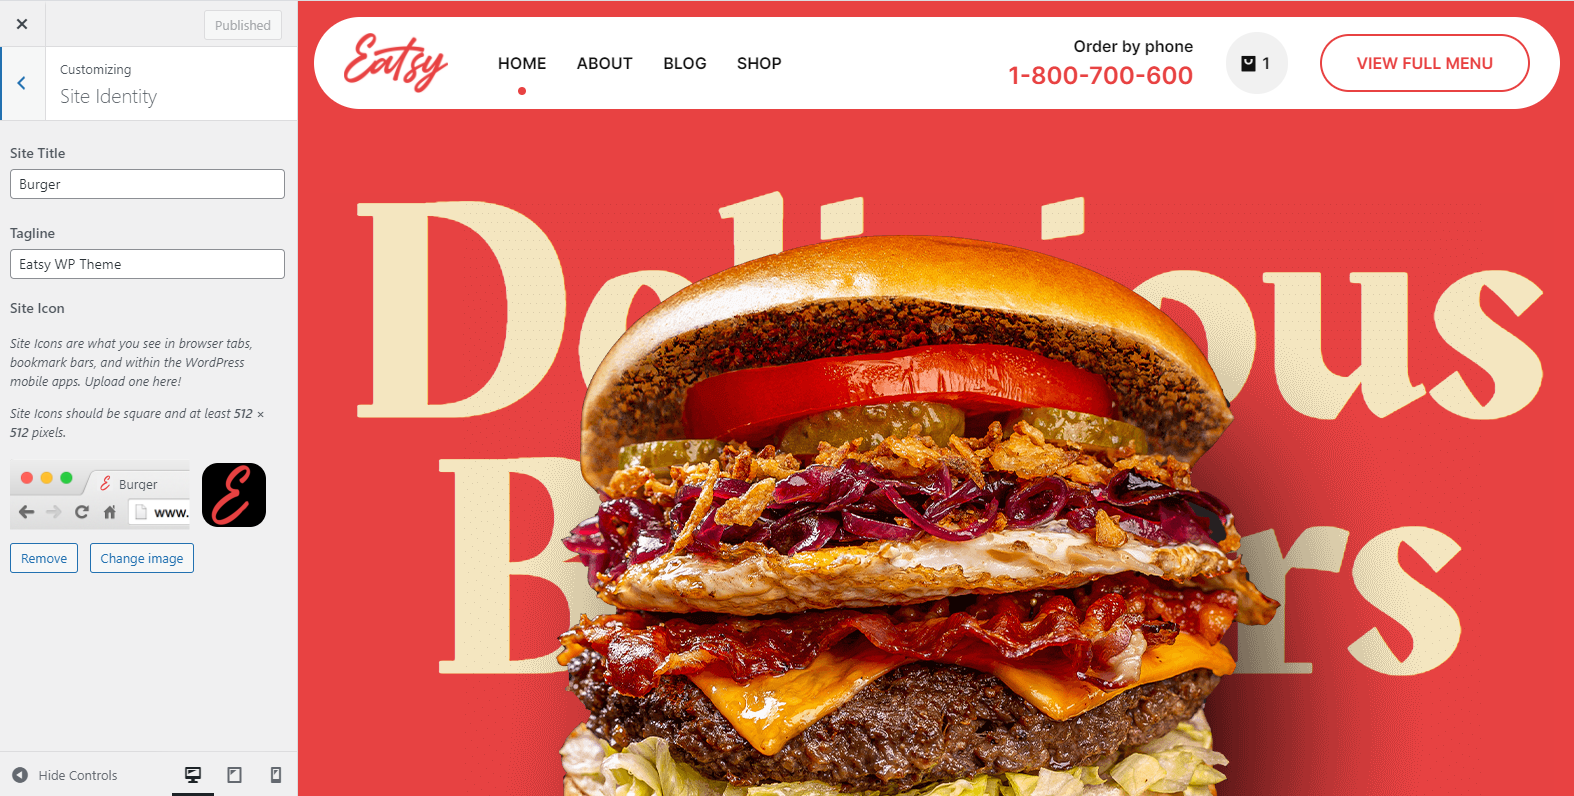 http://documentation.bold-themes.com/eatsy/wp-content/uploads/sites/64/2021/04/site-identity.png